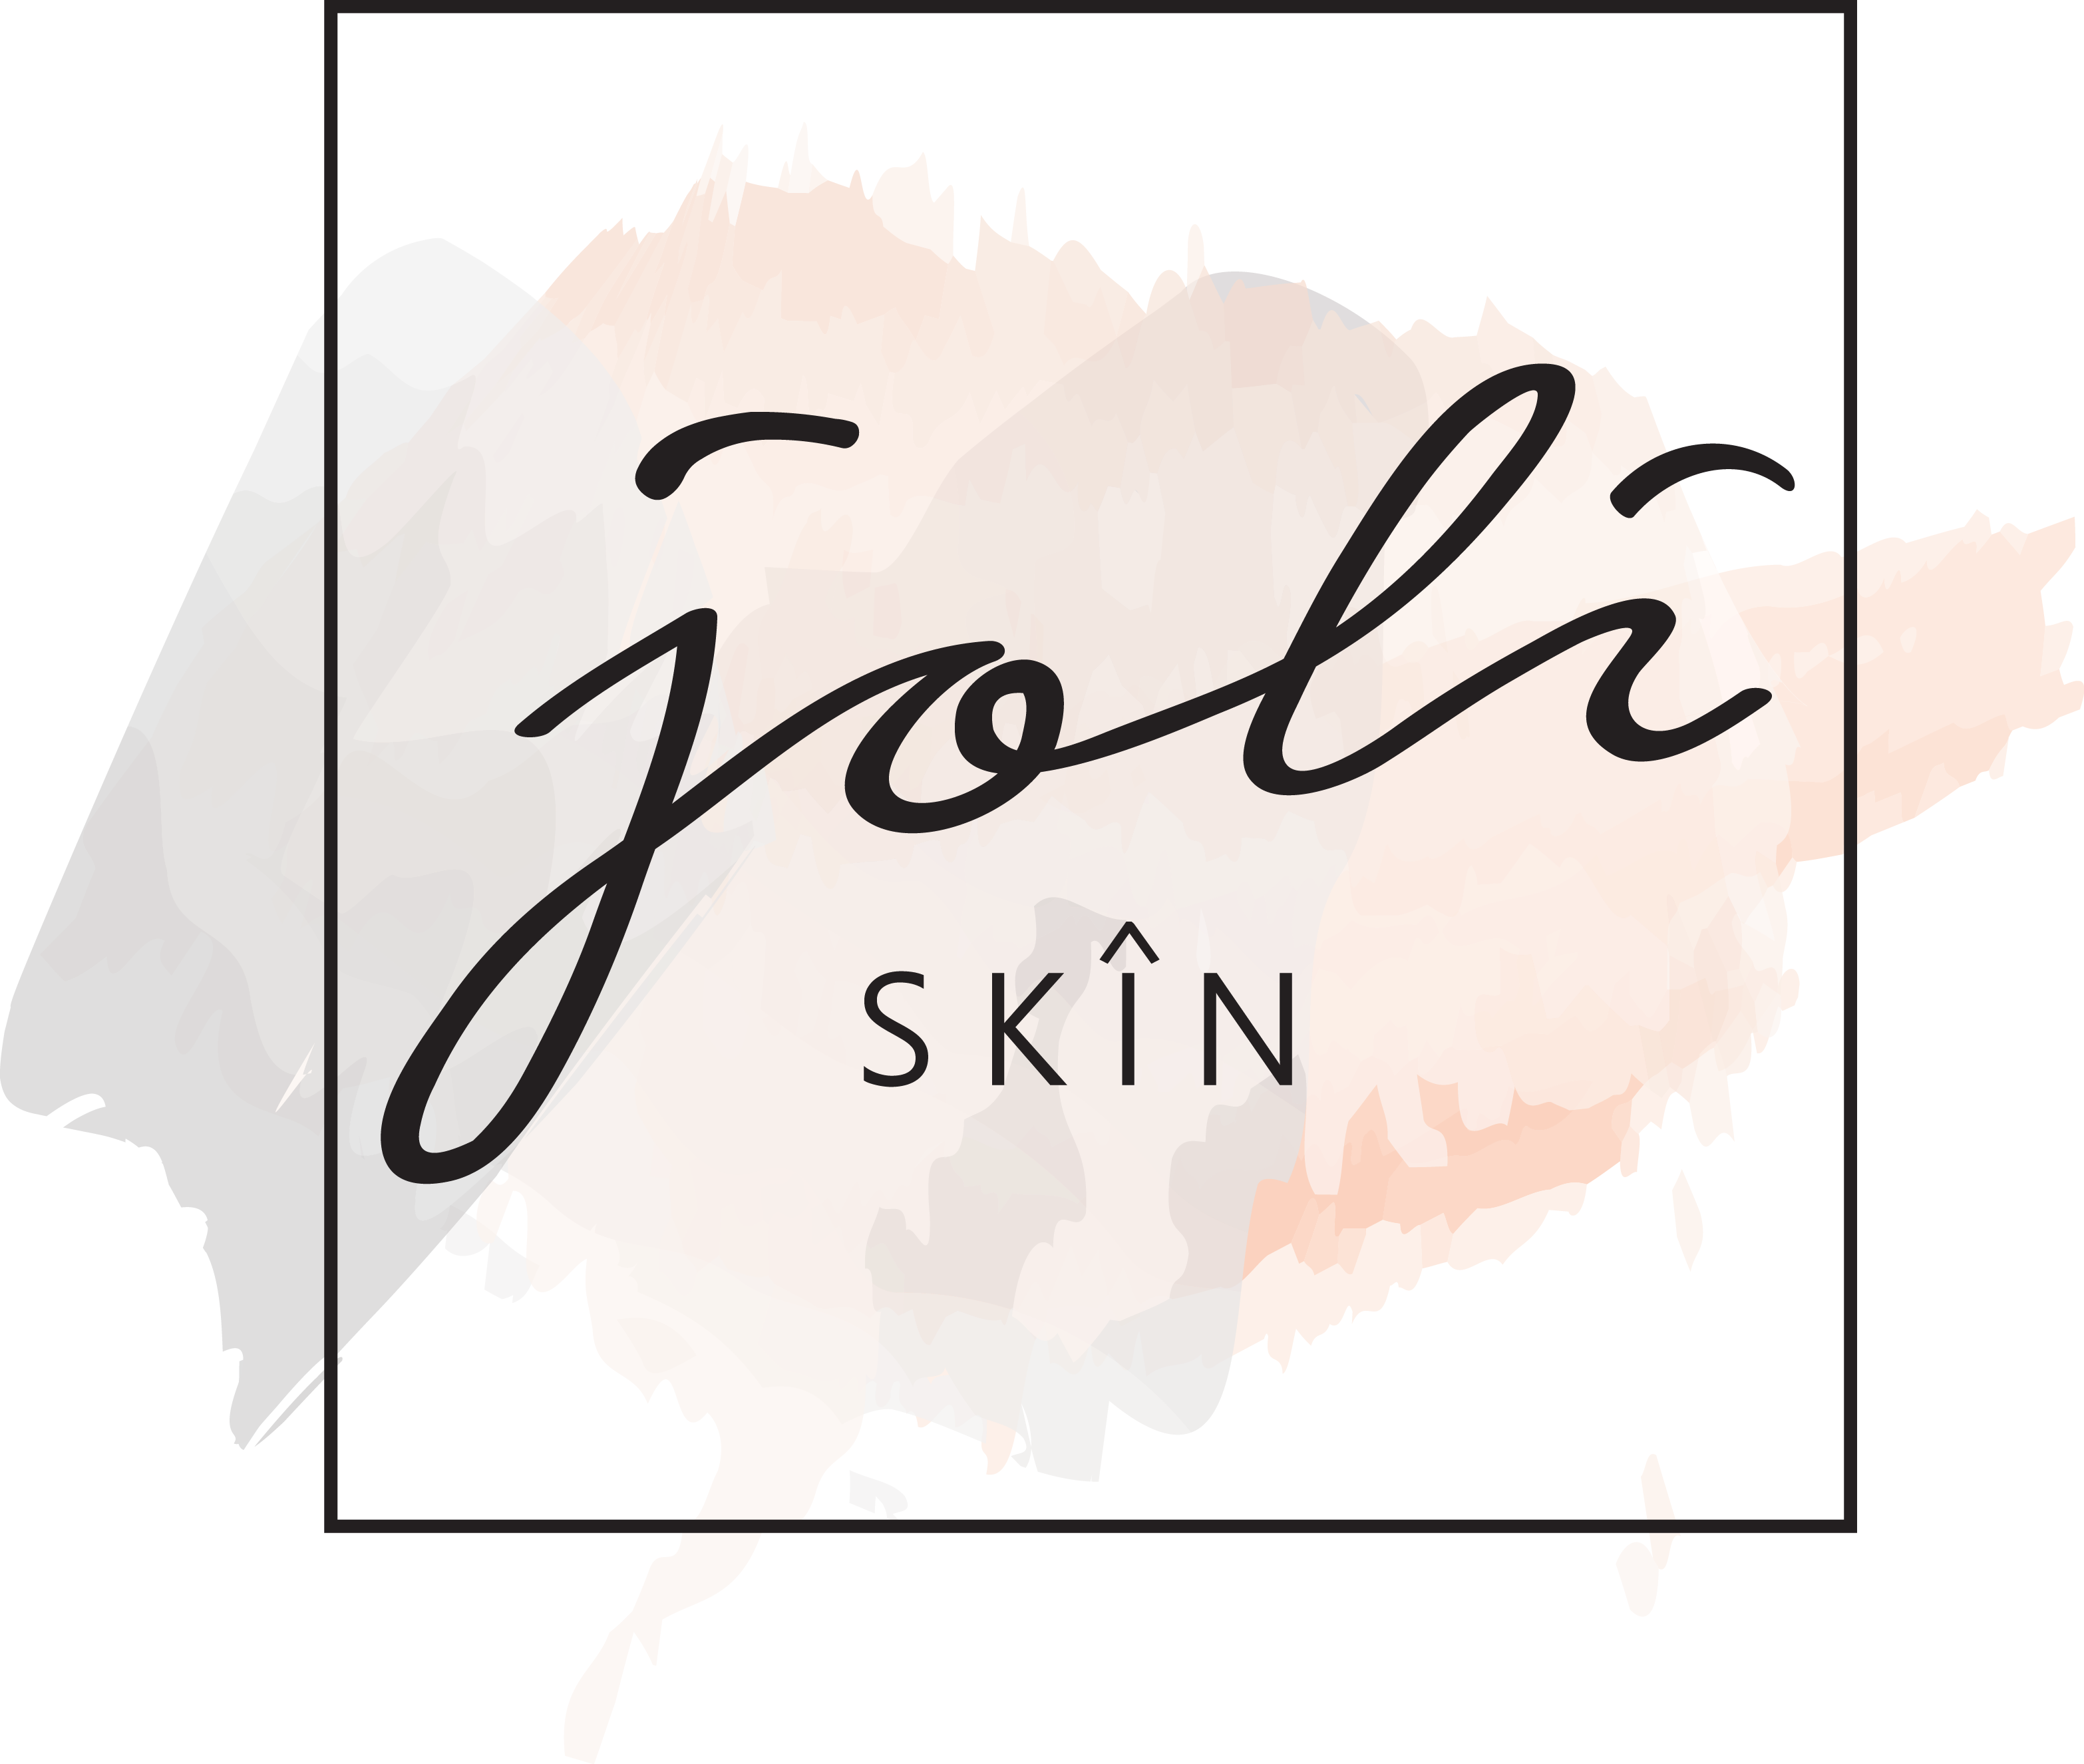 A Logo for Made-in-Europe Skincare/cosmetics Brand.